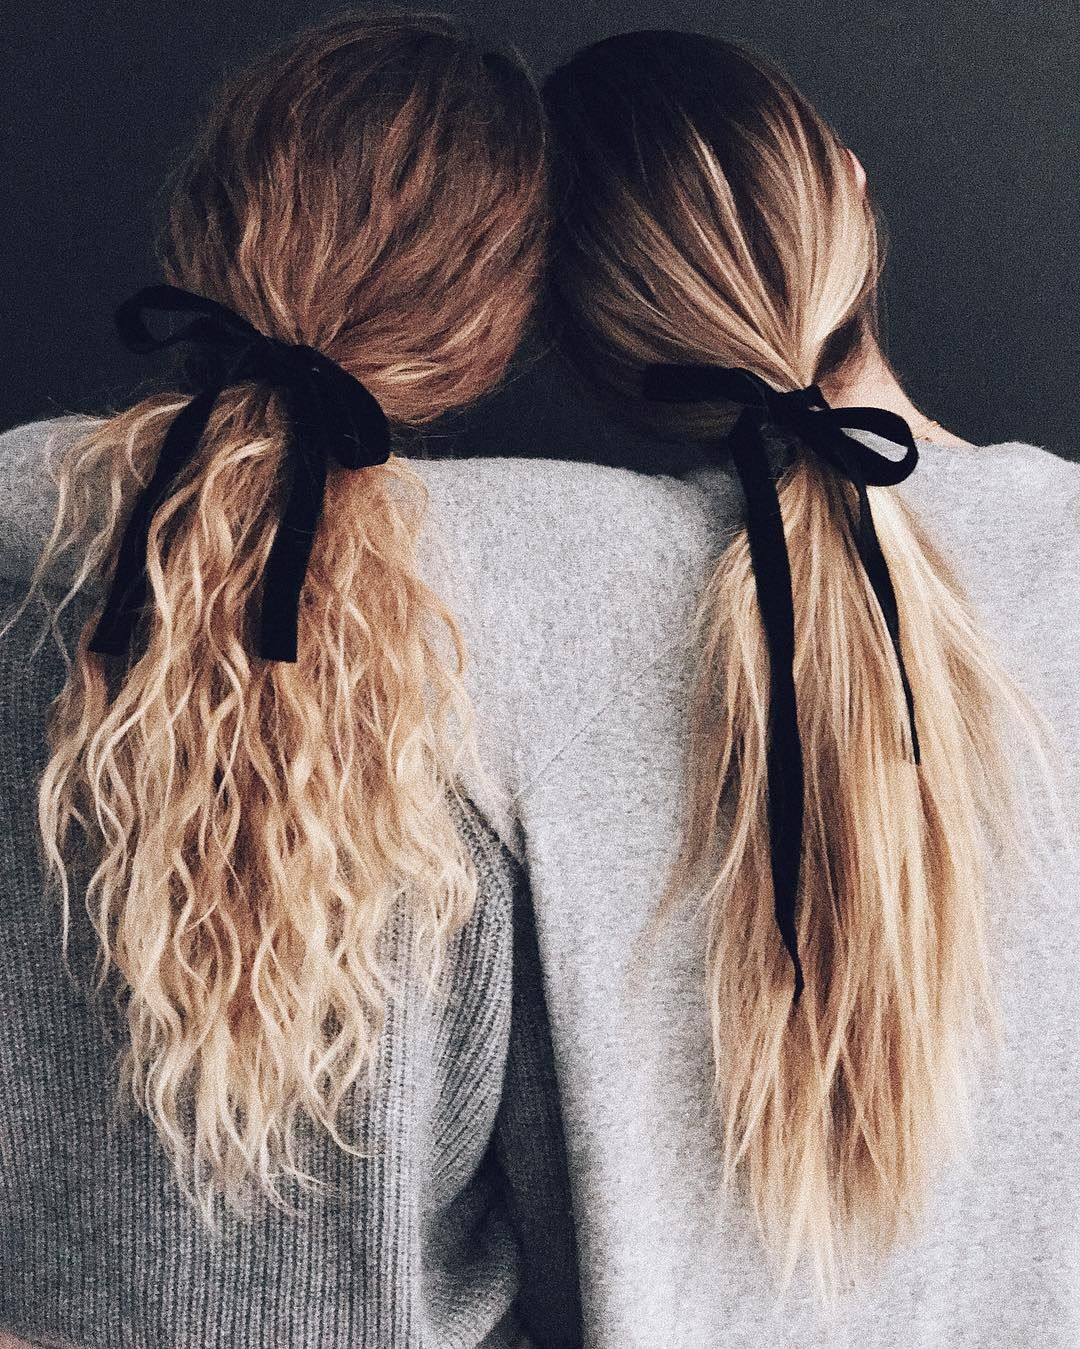 Fall Hairstyles 2018 Top 28 Hair Trends And Hairstyles For The Fall